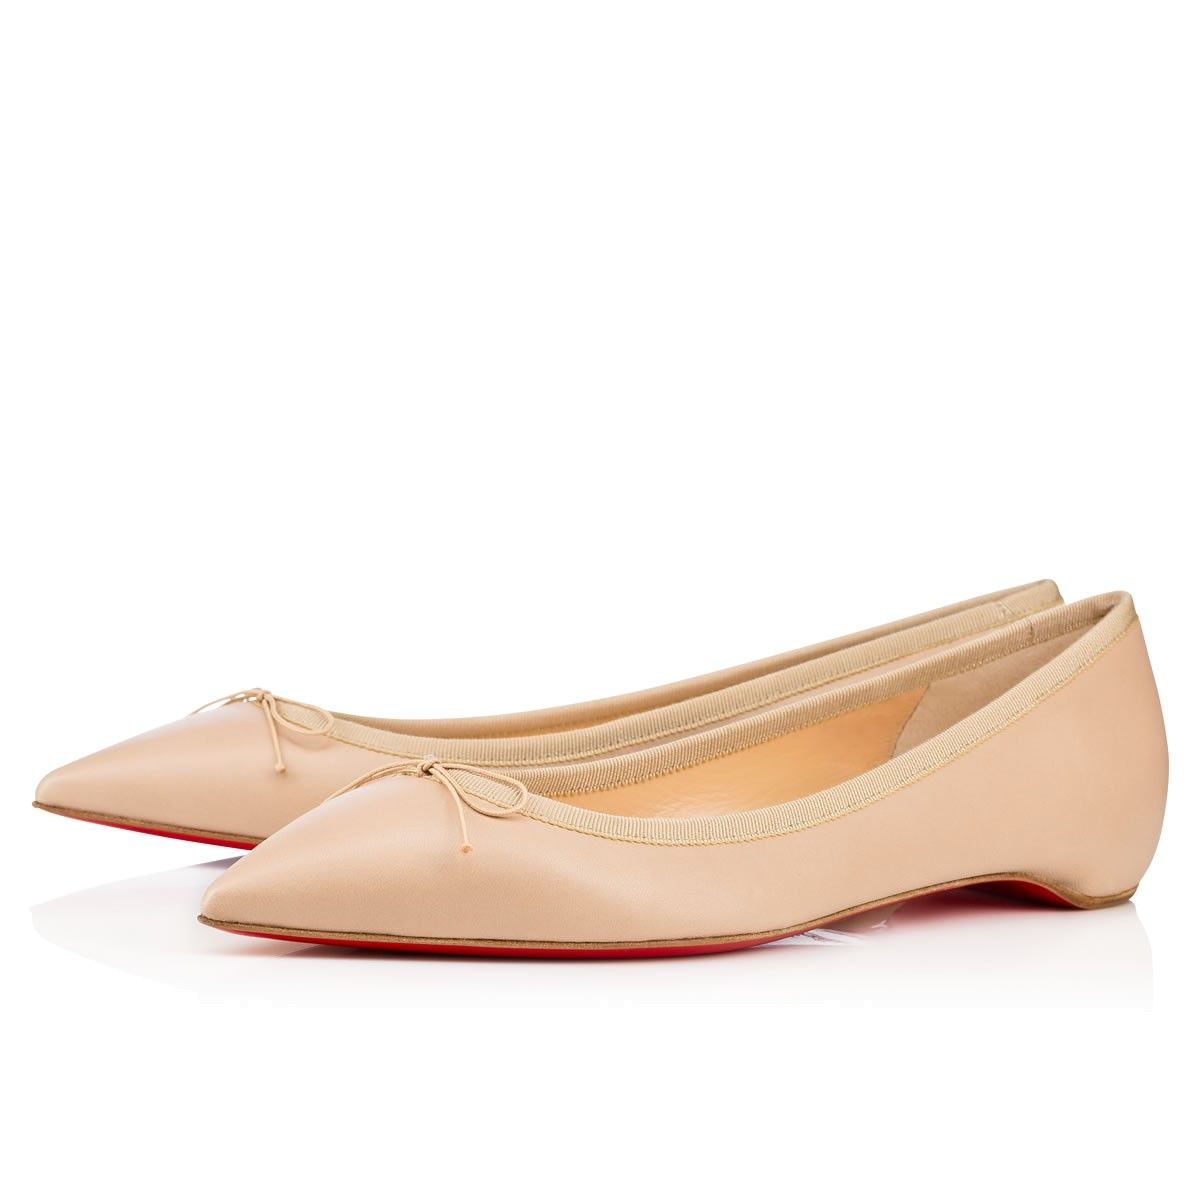 8230f9ccefab CHRISTIAN LOUBOUTIN Solasofia Flat Nude N°2 Leather.  christianlouboutin   shoes